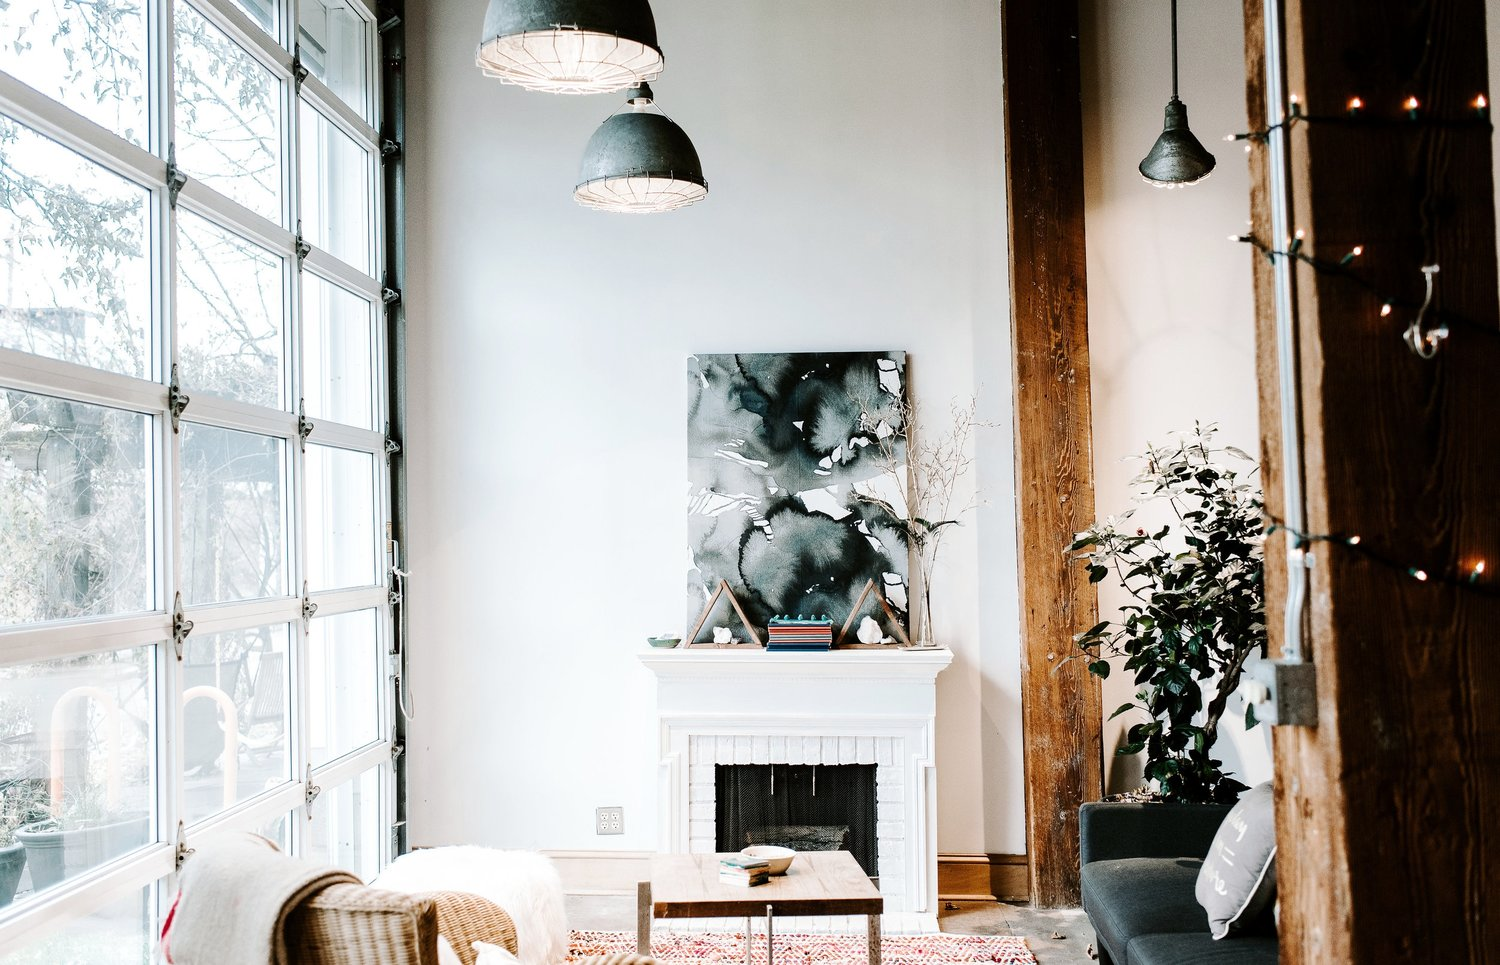 Industrial, comfy, cute, pastels - can we stay here all day?!